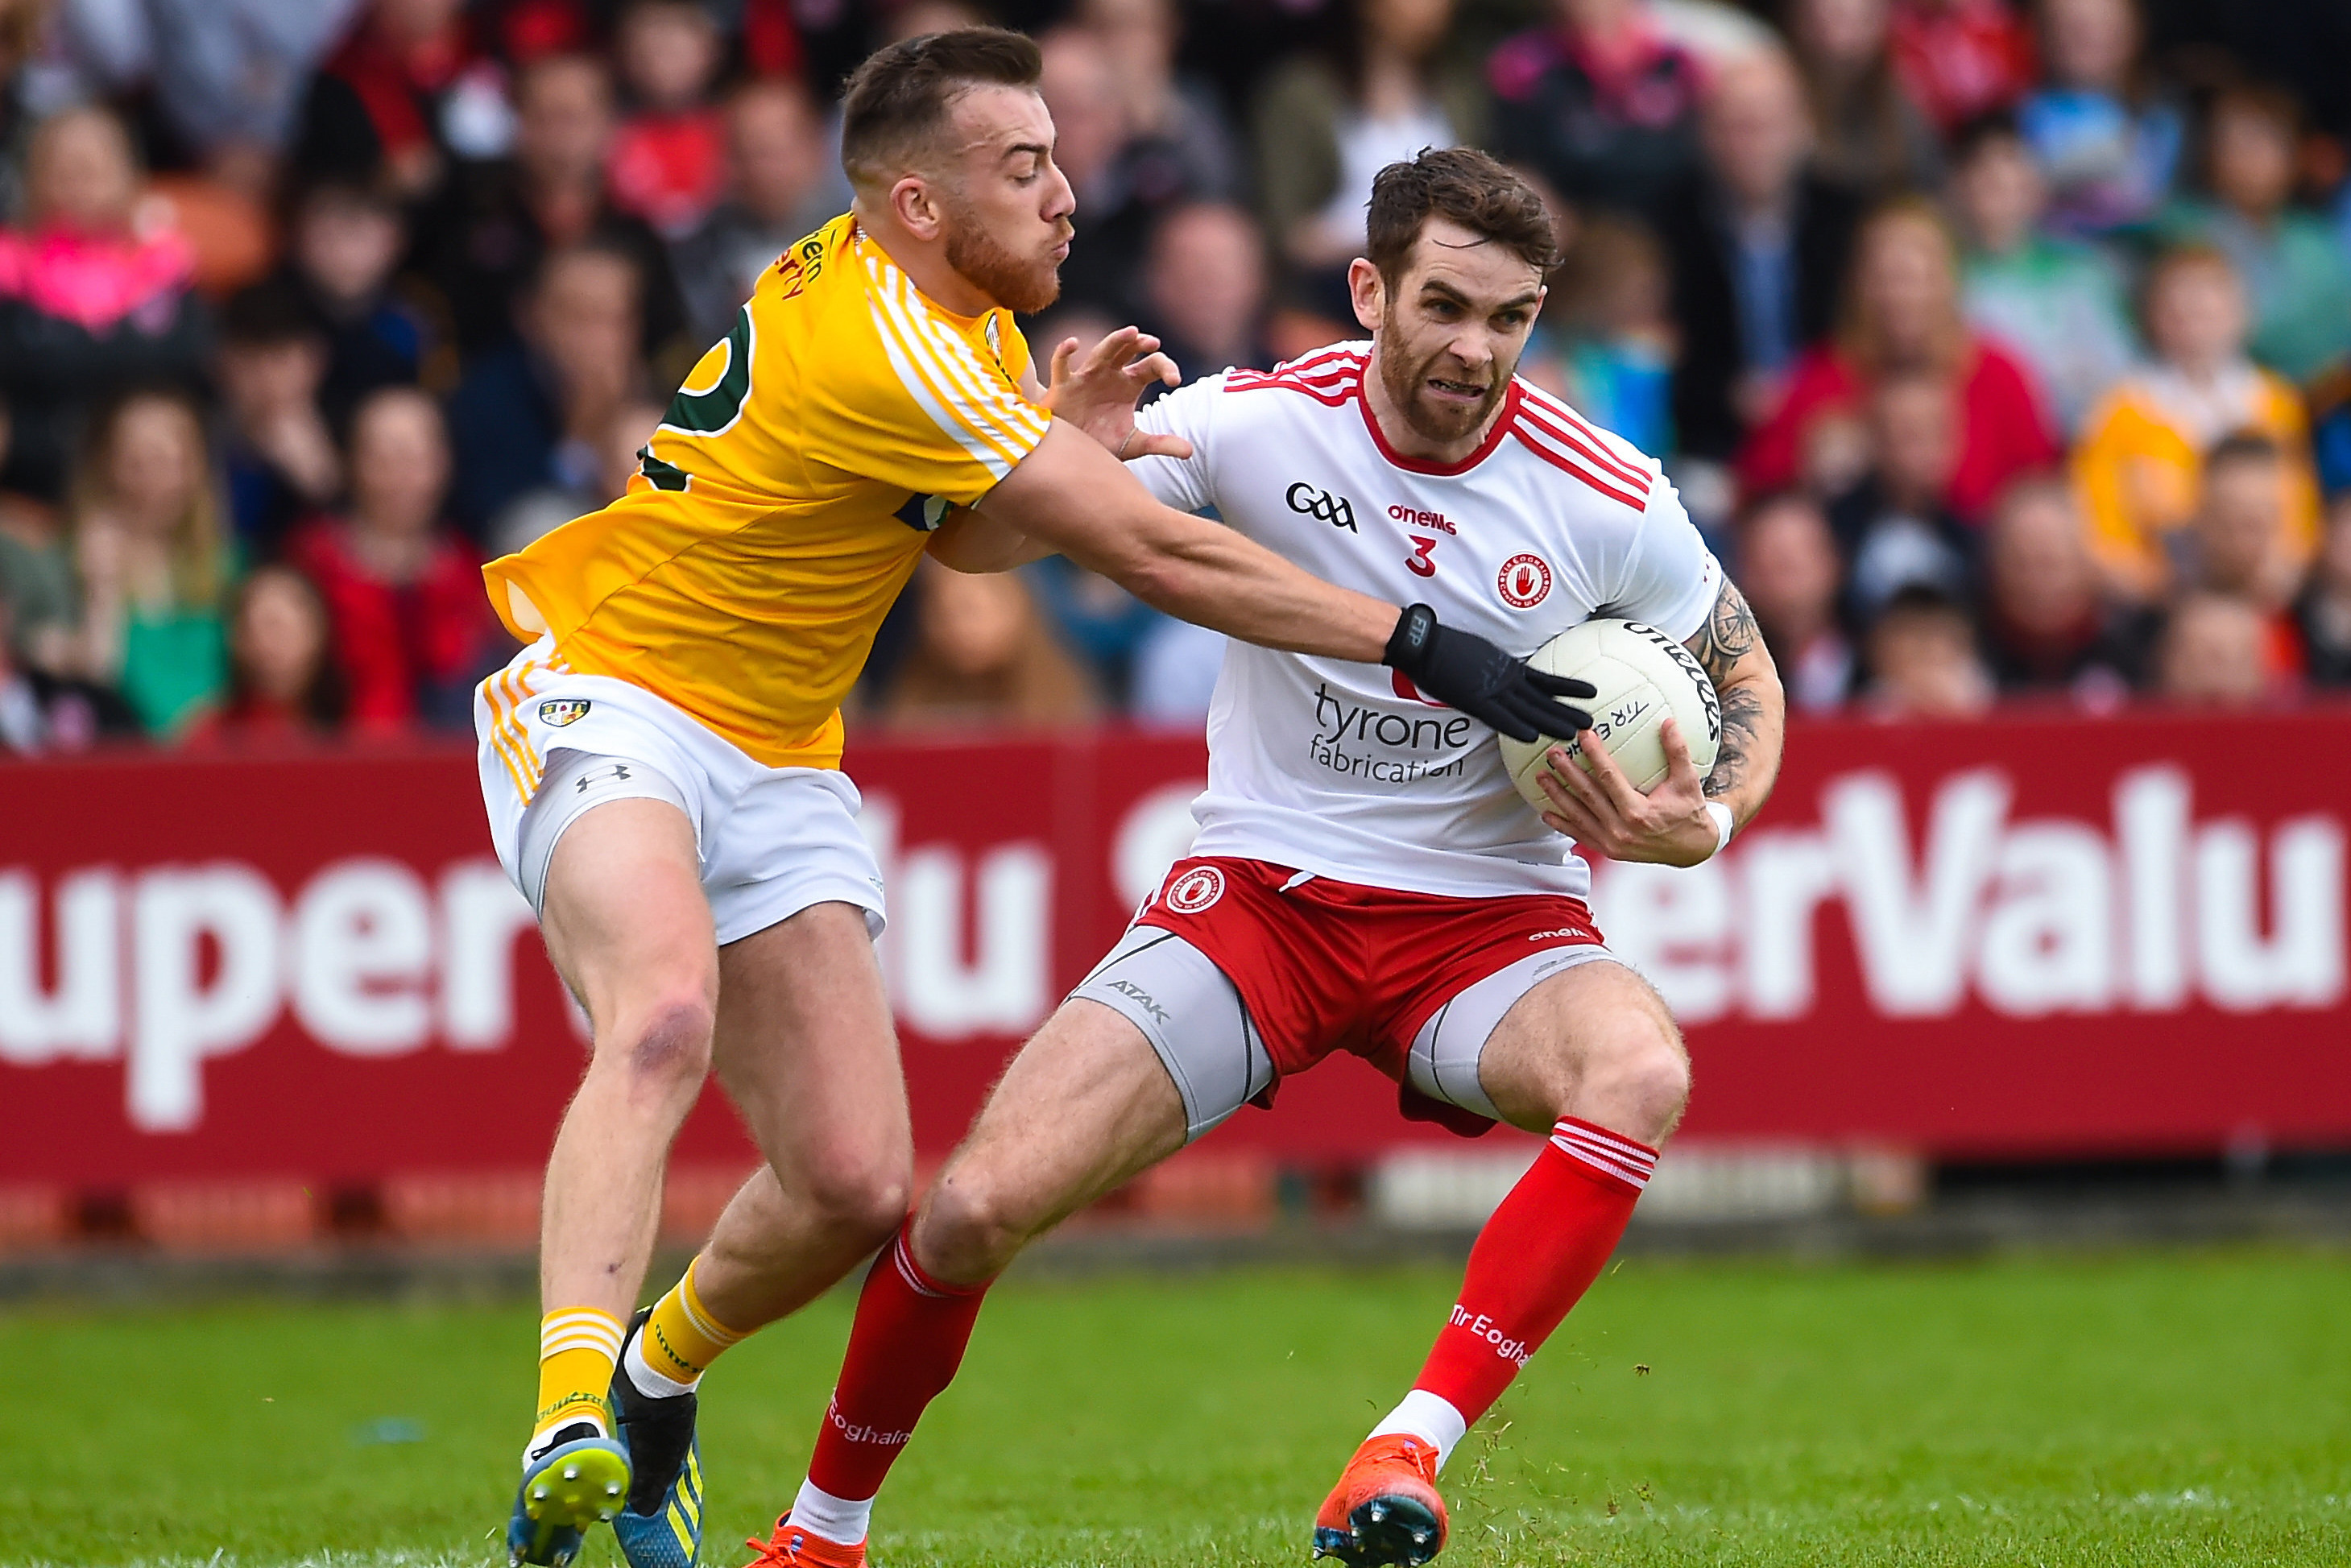 Tyrone cruise into Ulster Senior Championship semi-final